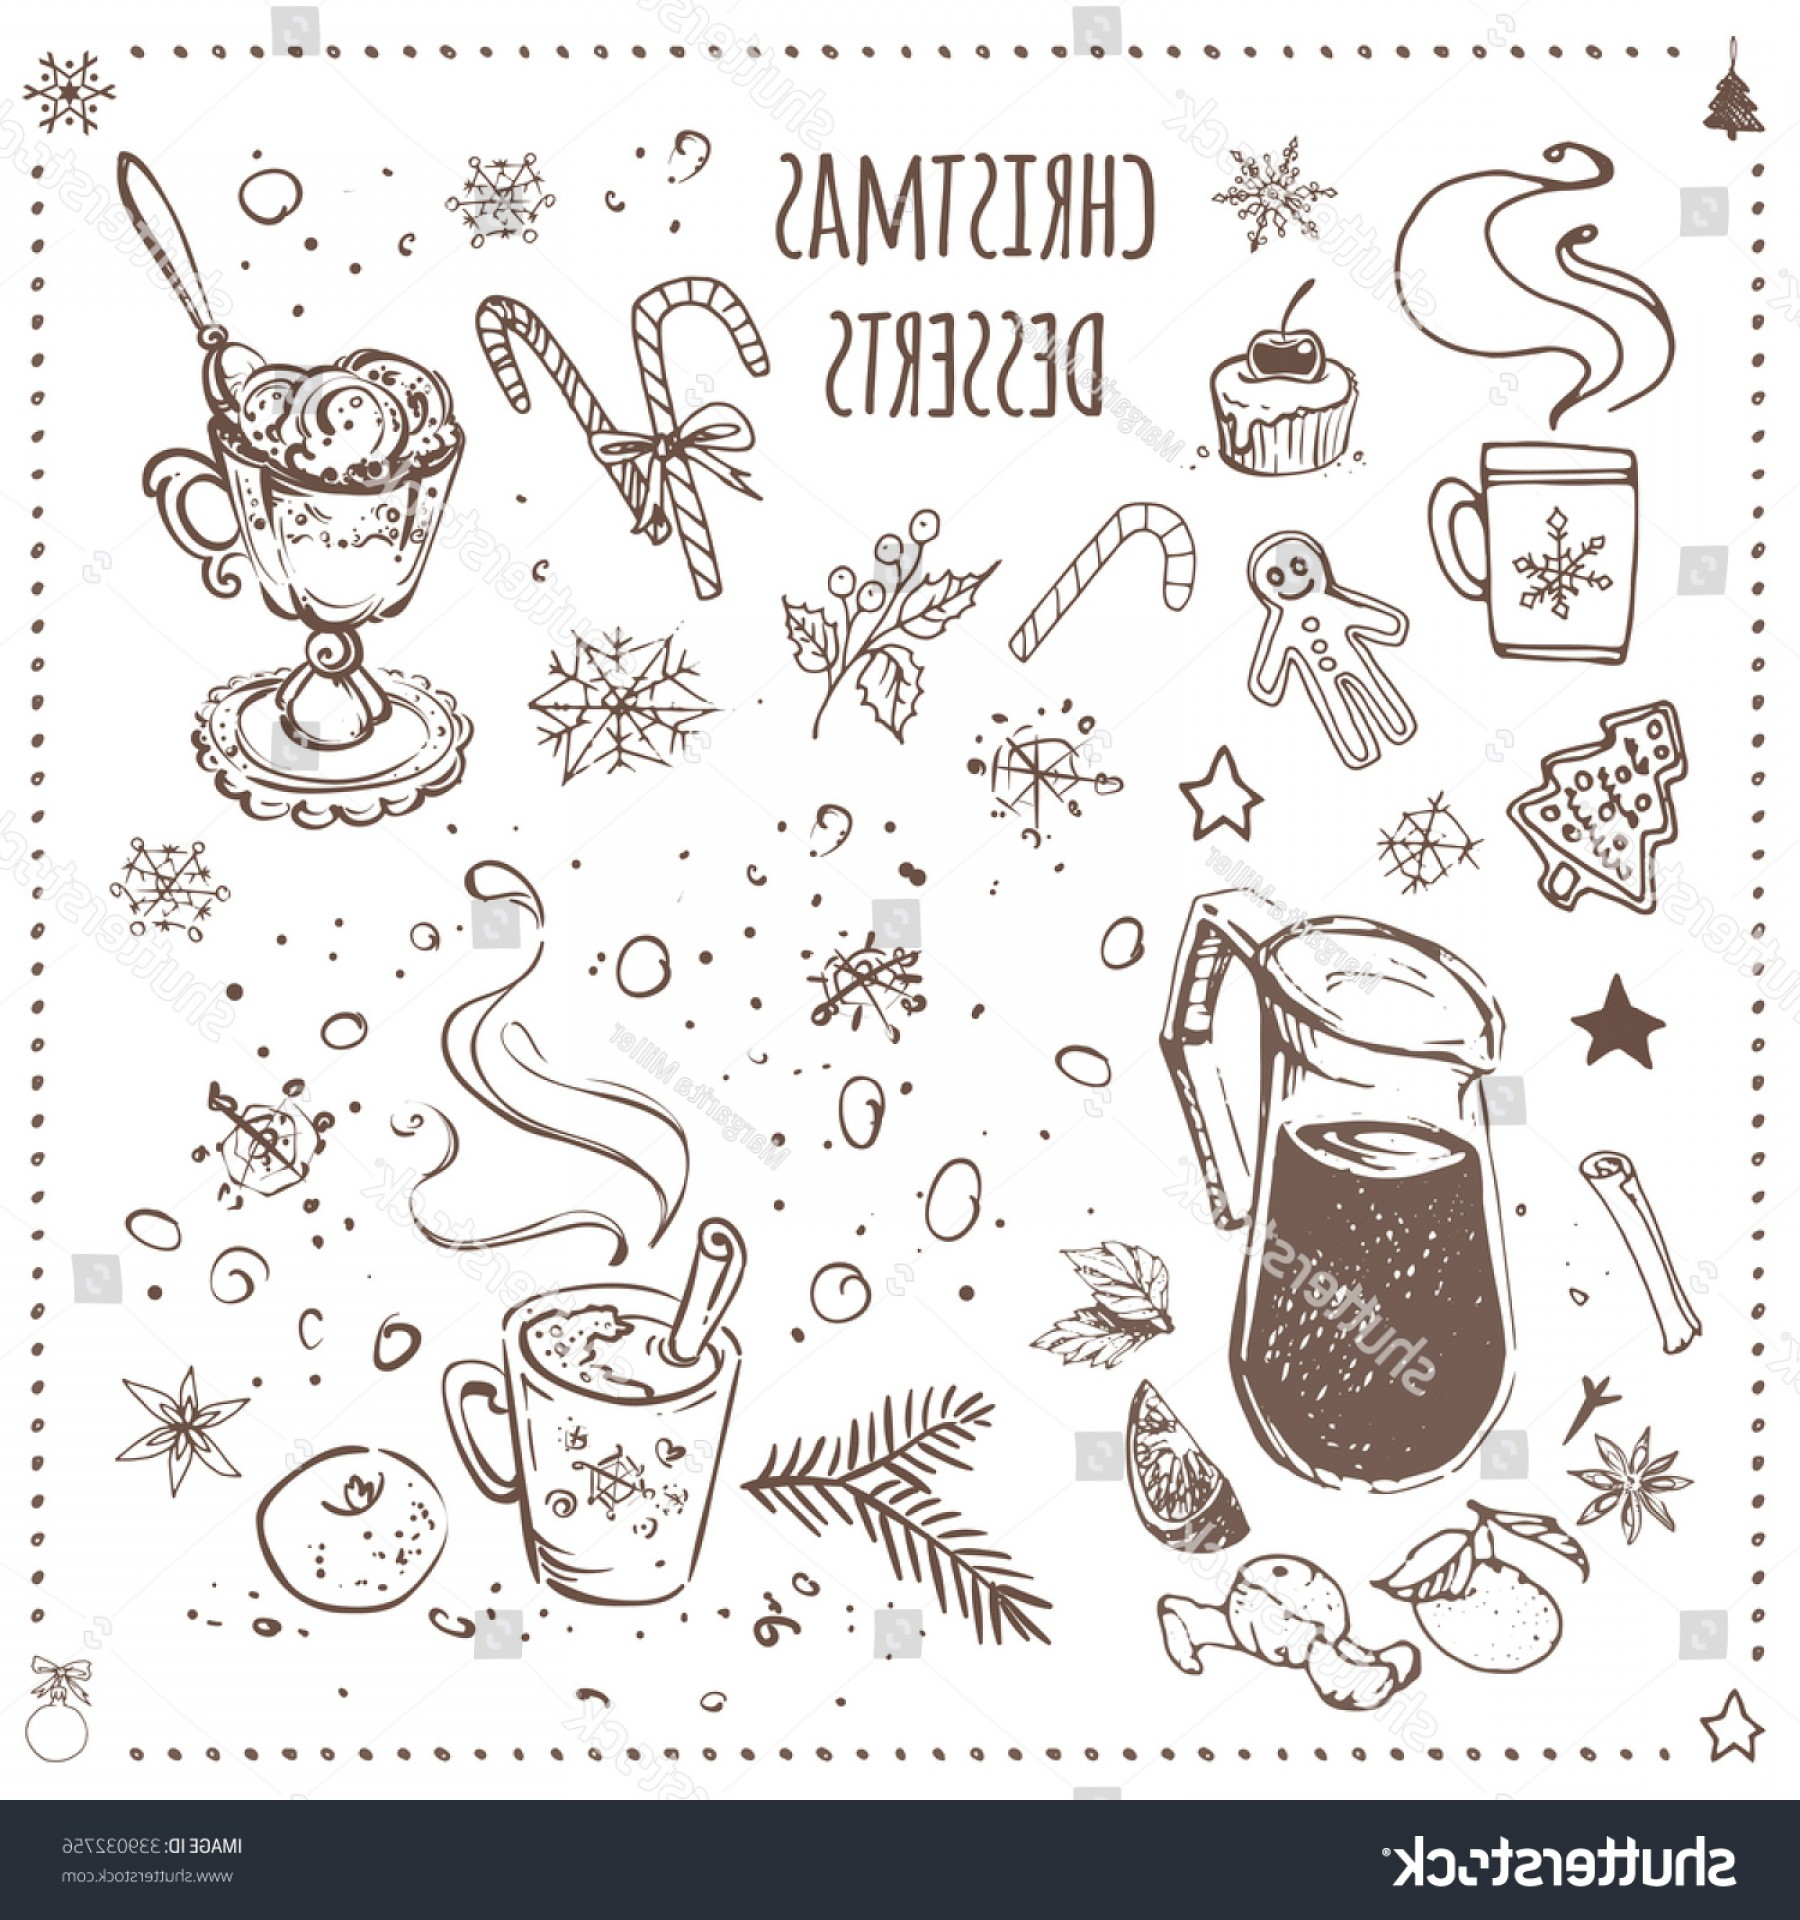 Food Vectors 50 S: Christmas Food Desserts Vector Collection Ink